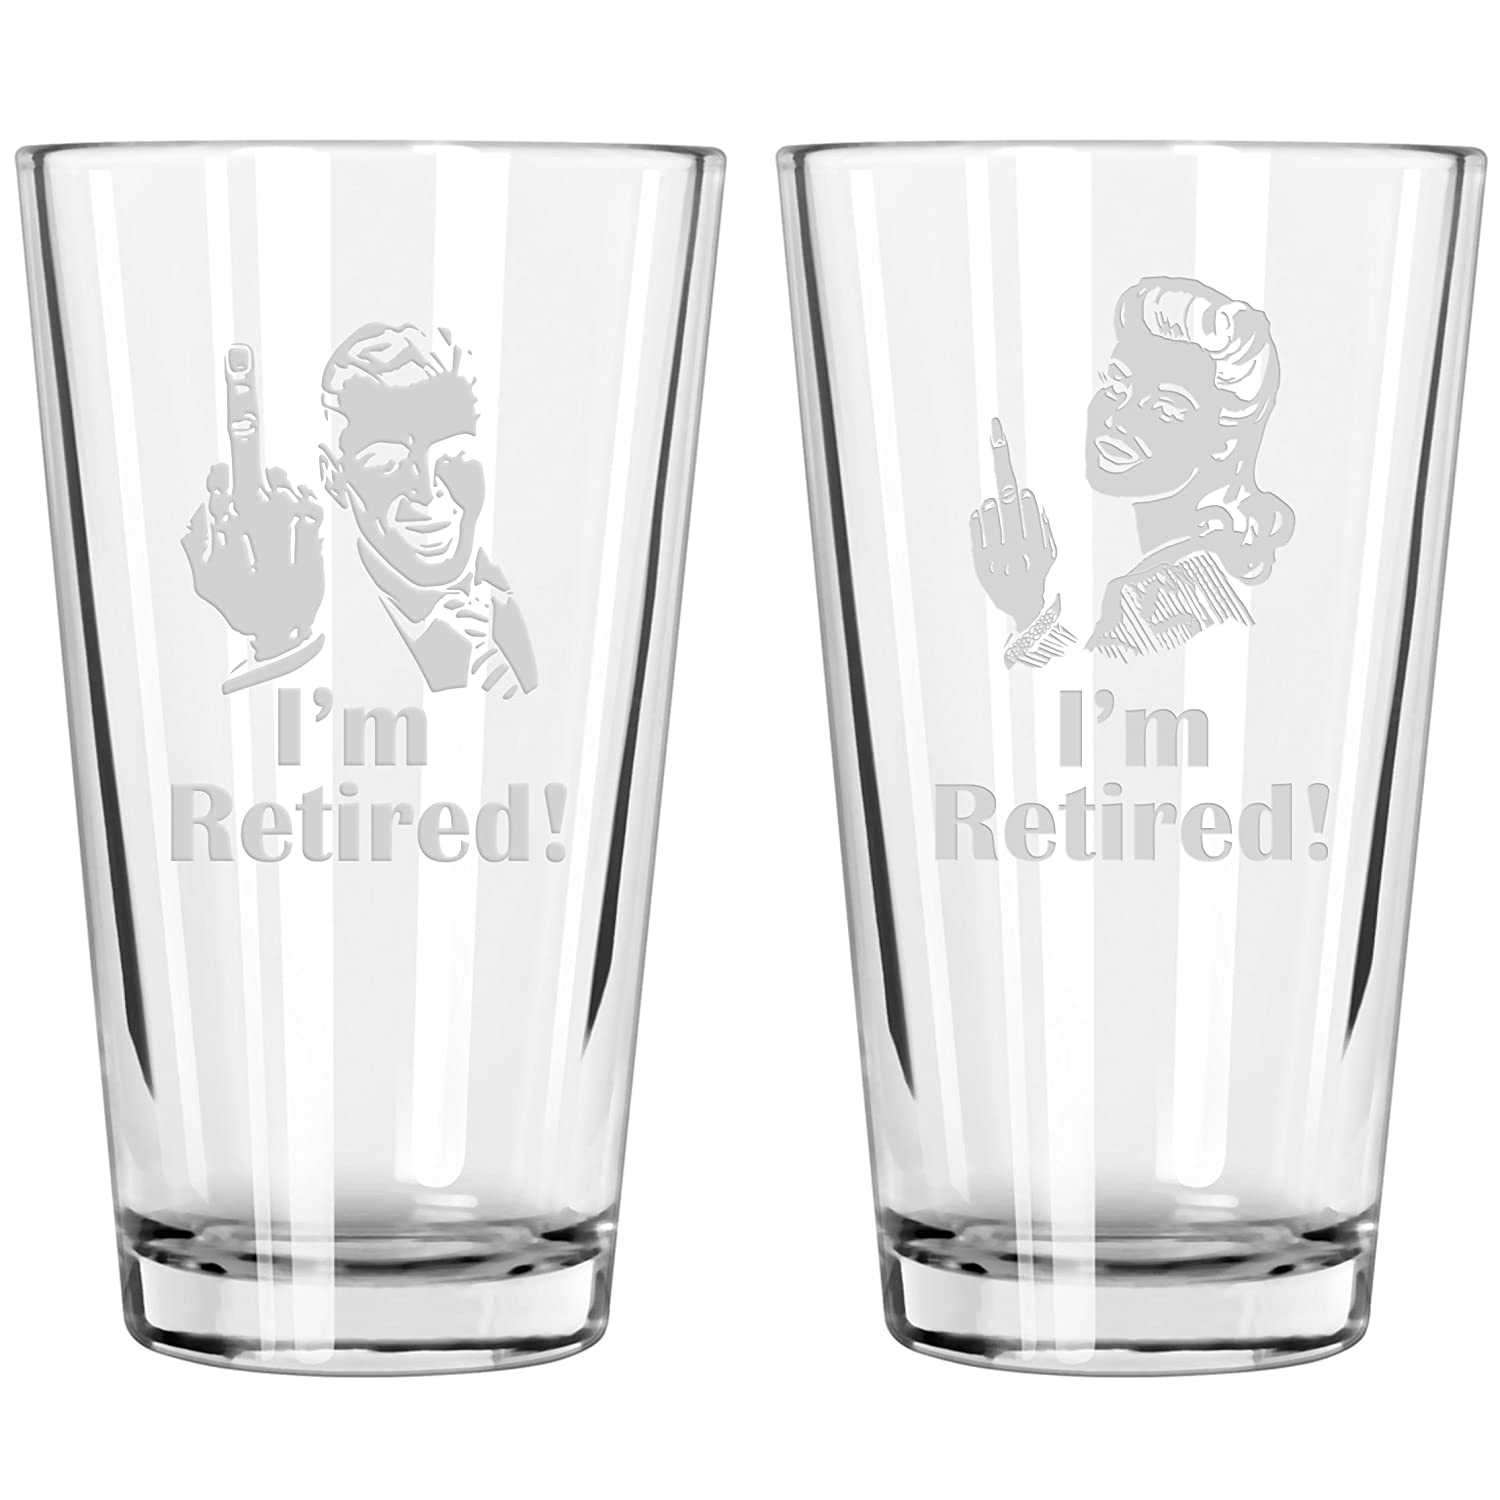 "Retirement Gift Celebration Glass, Drinking Glass for Men, Funny Beer Glasses for Retired Adult Men - ""I'm Retired!"" Pint Glass Crass Glass CG115"